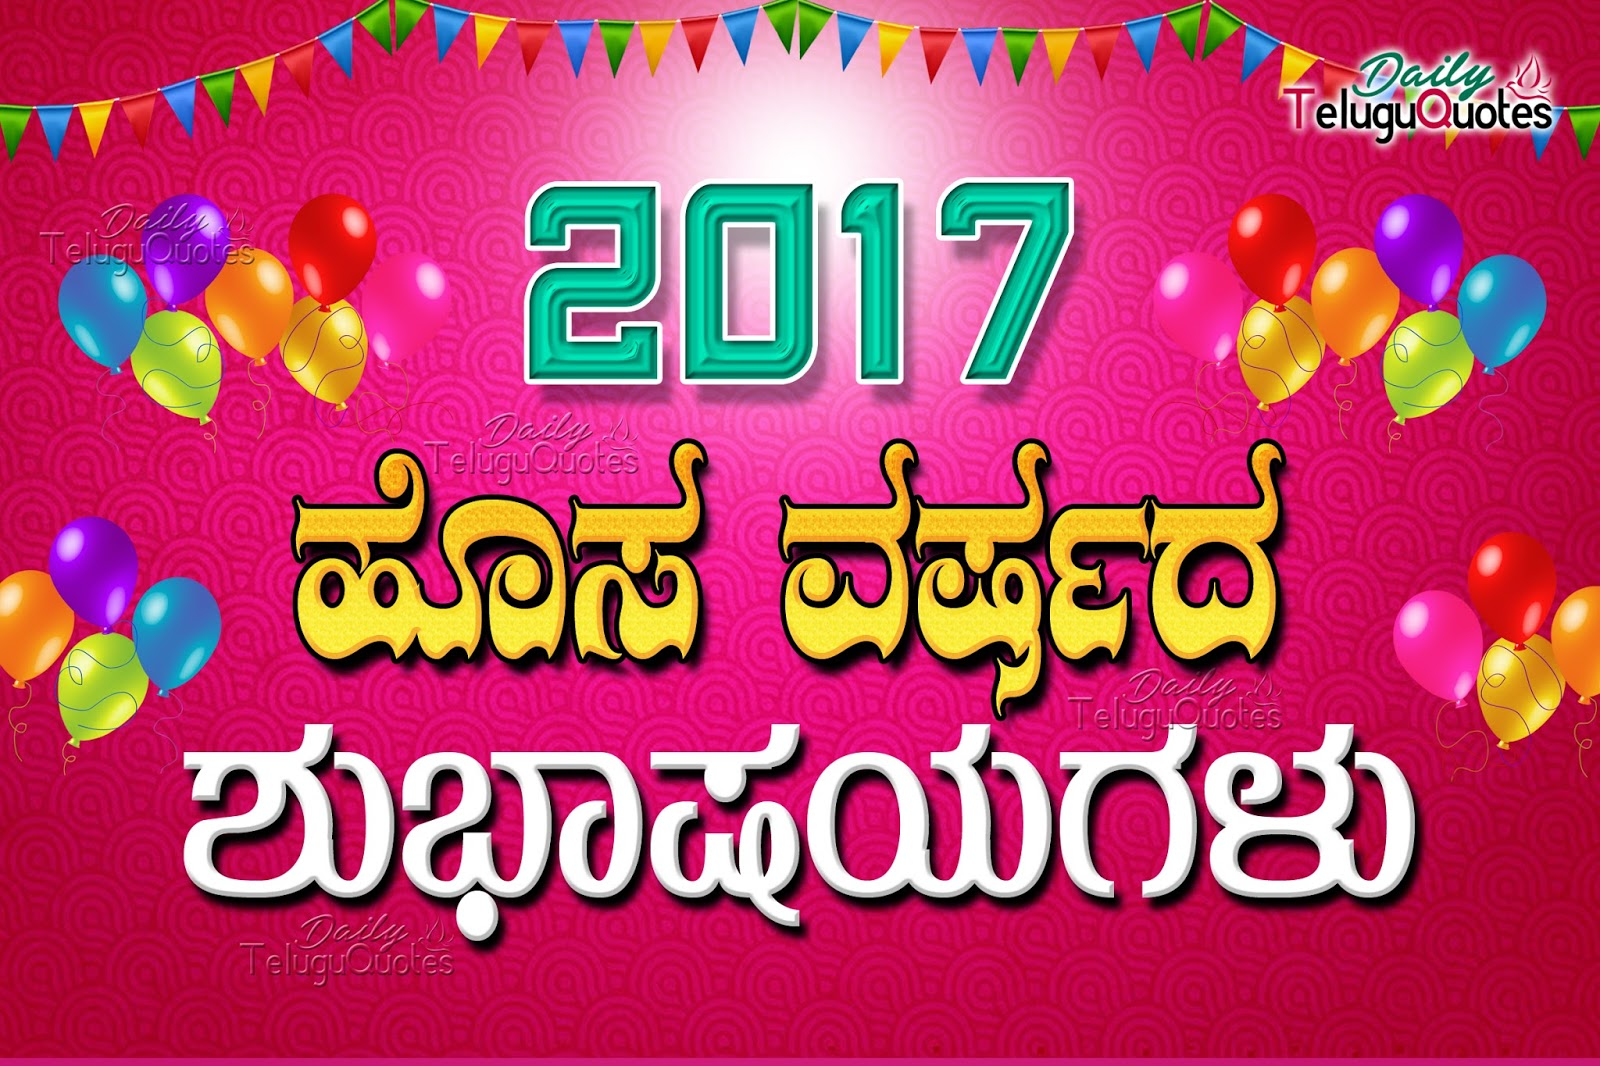 Happy new year kannada best wallpapers 2017 dailyteluguquotes 2017 happy new year kannda greetings kannada happy new year sms kannda new year cards kristyandbryce Choice Image